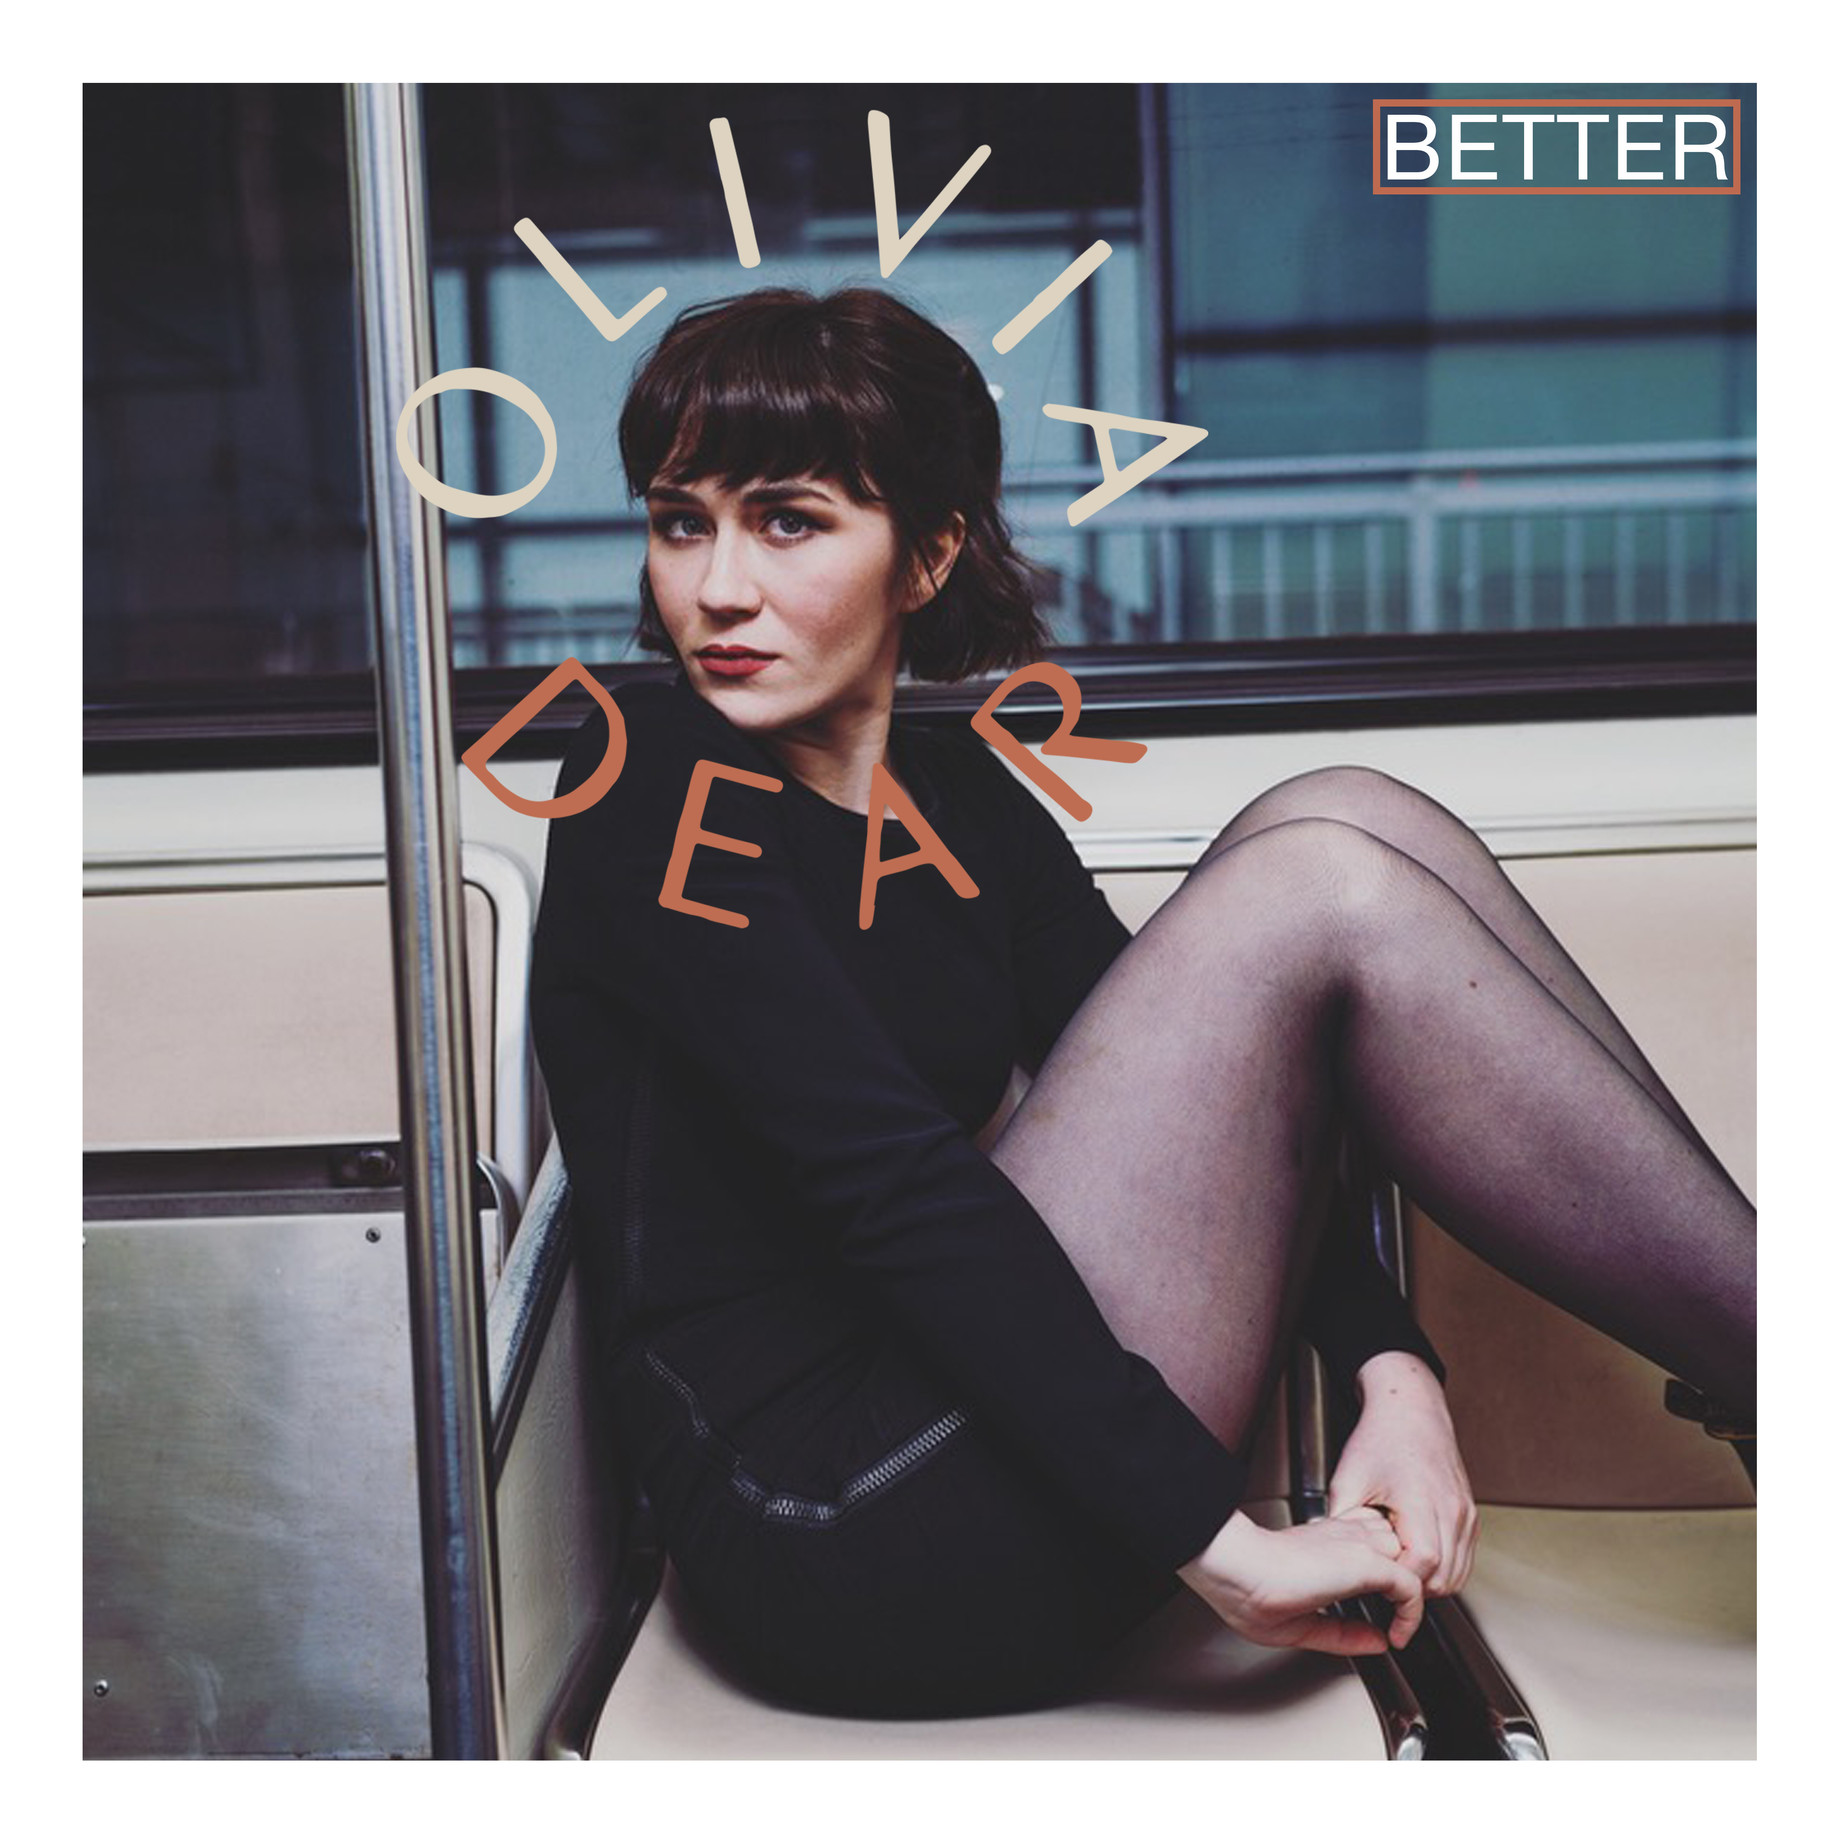 Better by Olivia Dear